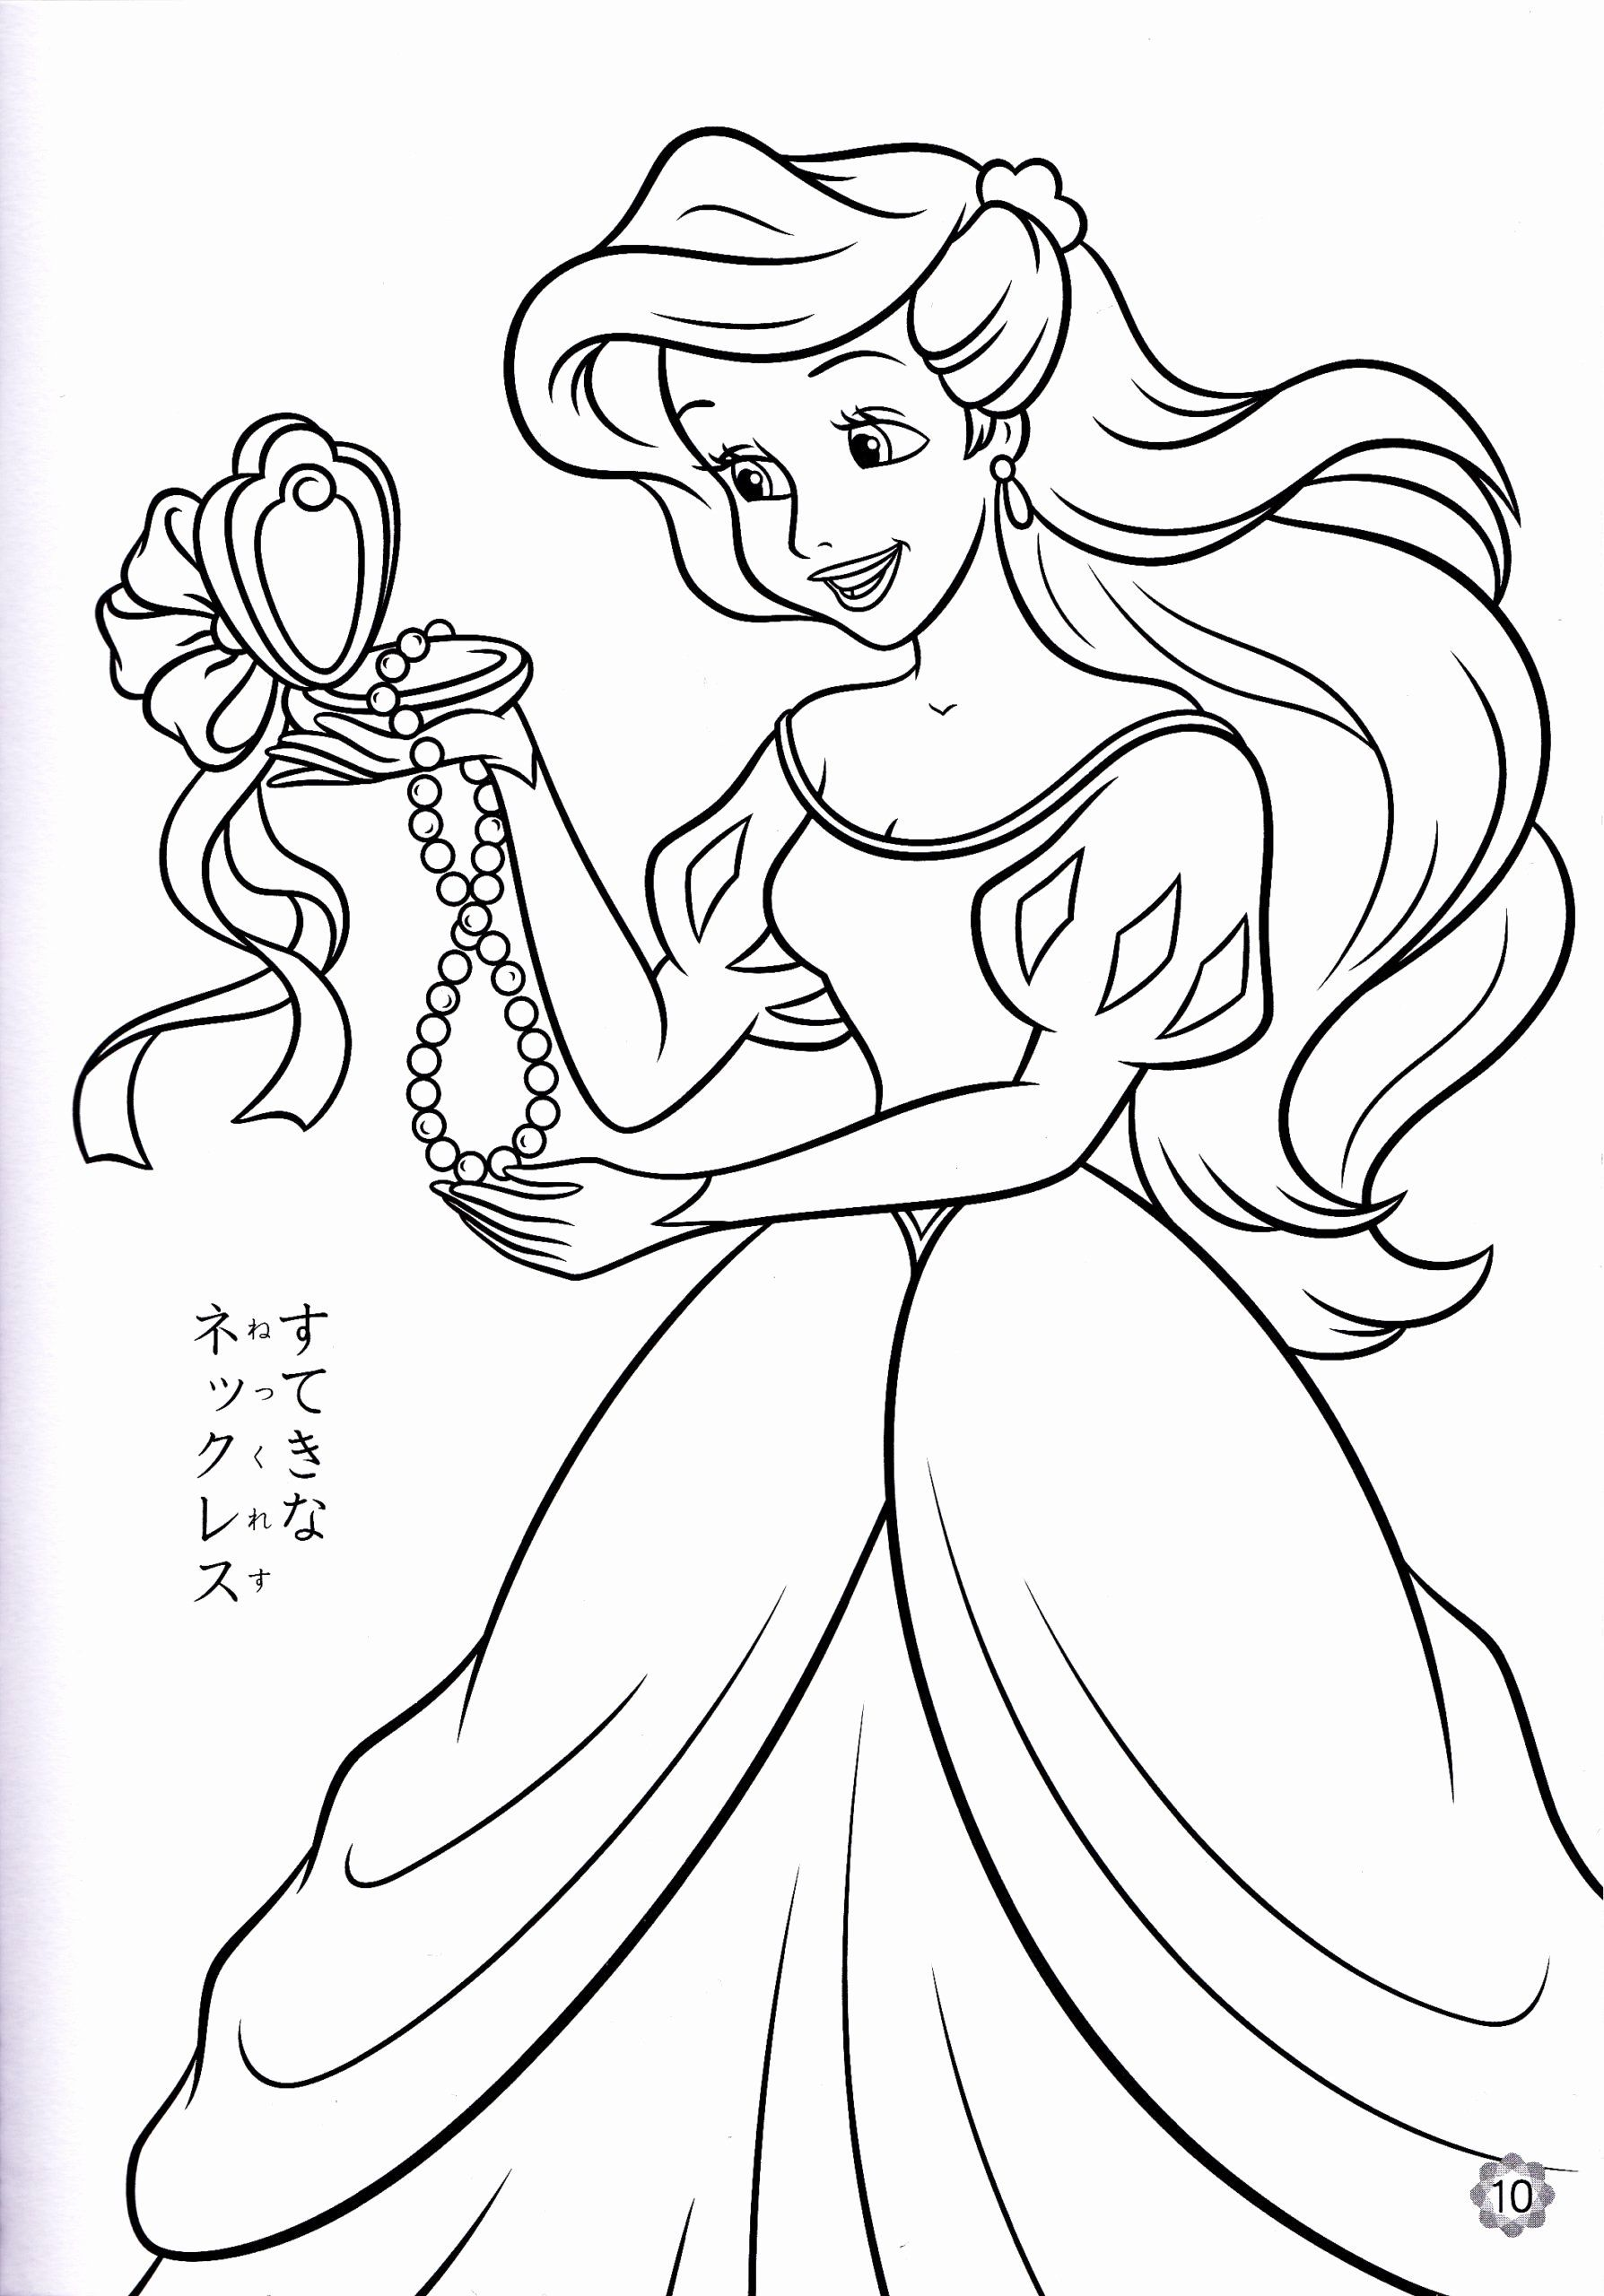 Princess Coloring On Line Beautiful Coloring Book Coloring Book Free Belle Pages Rapunzel Ariel Coloring Pages Mermaid Coloring Pages Disney Coloring Sheets